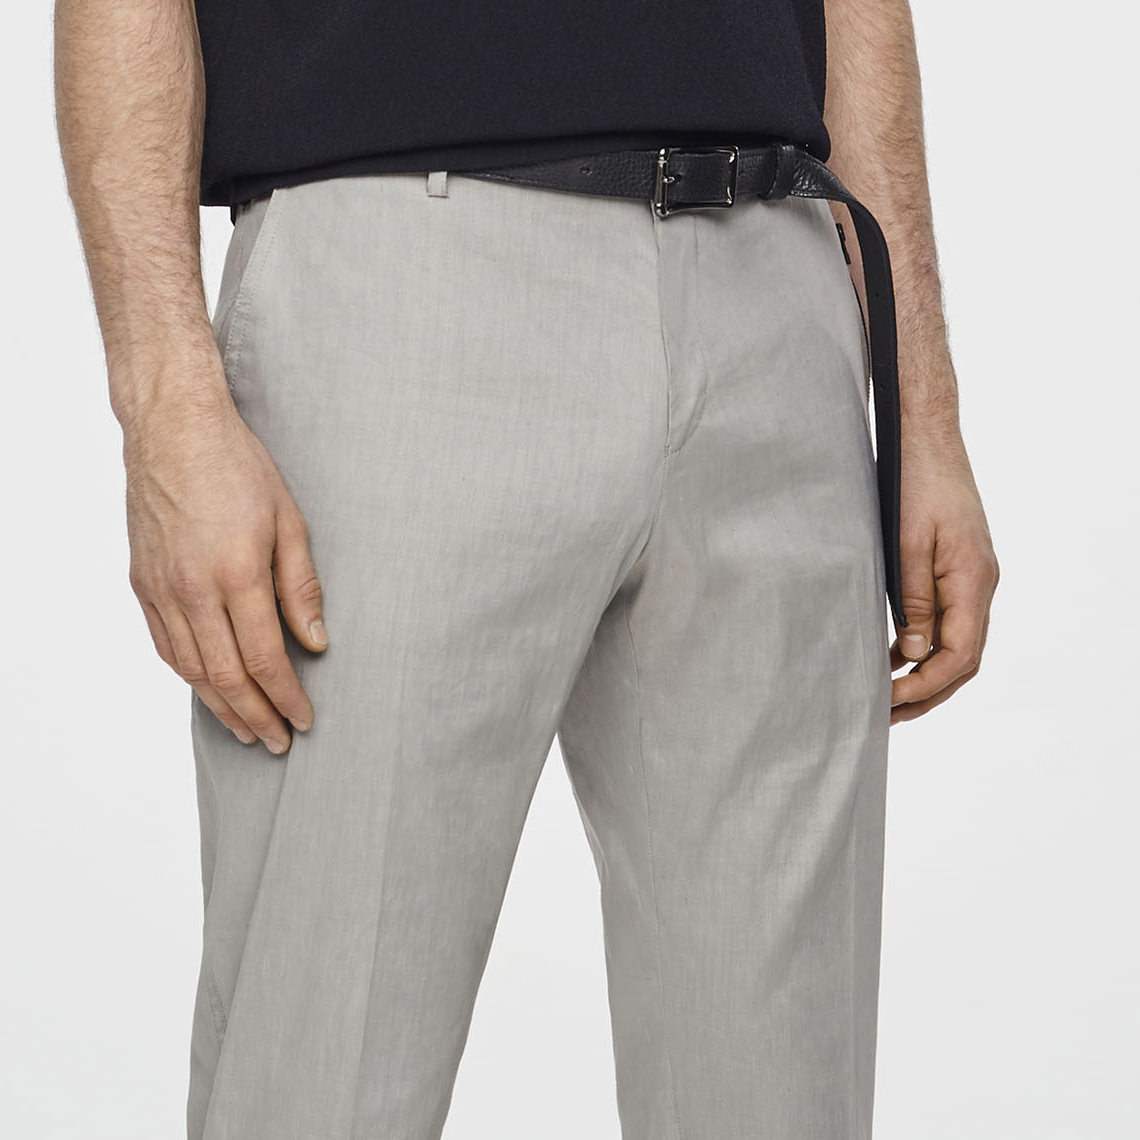 Sarah Pacini STRETCH-LINEN PANTS - ZIPPERED POCKETS Front